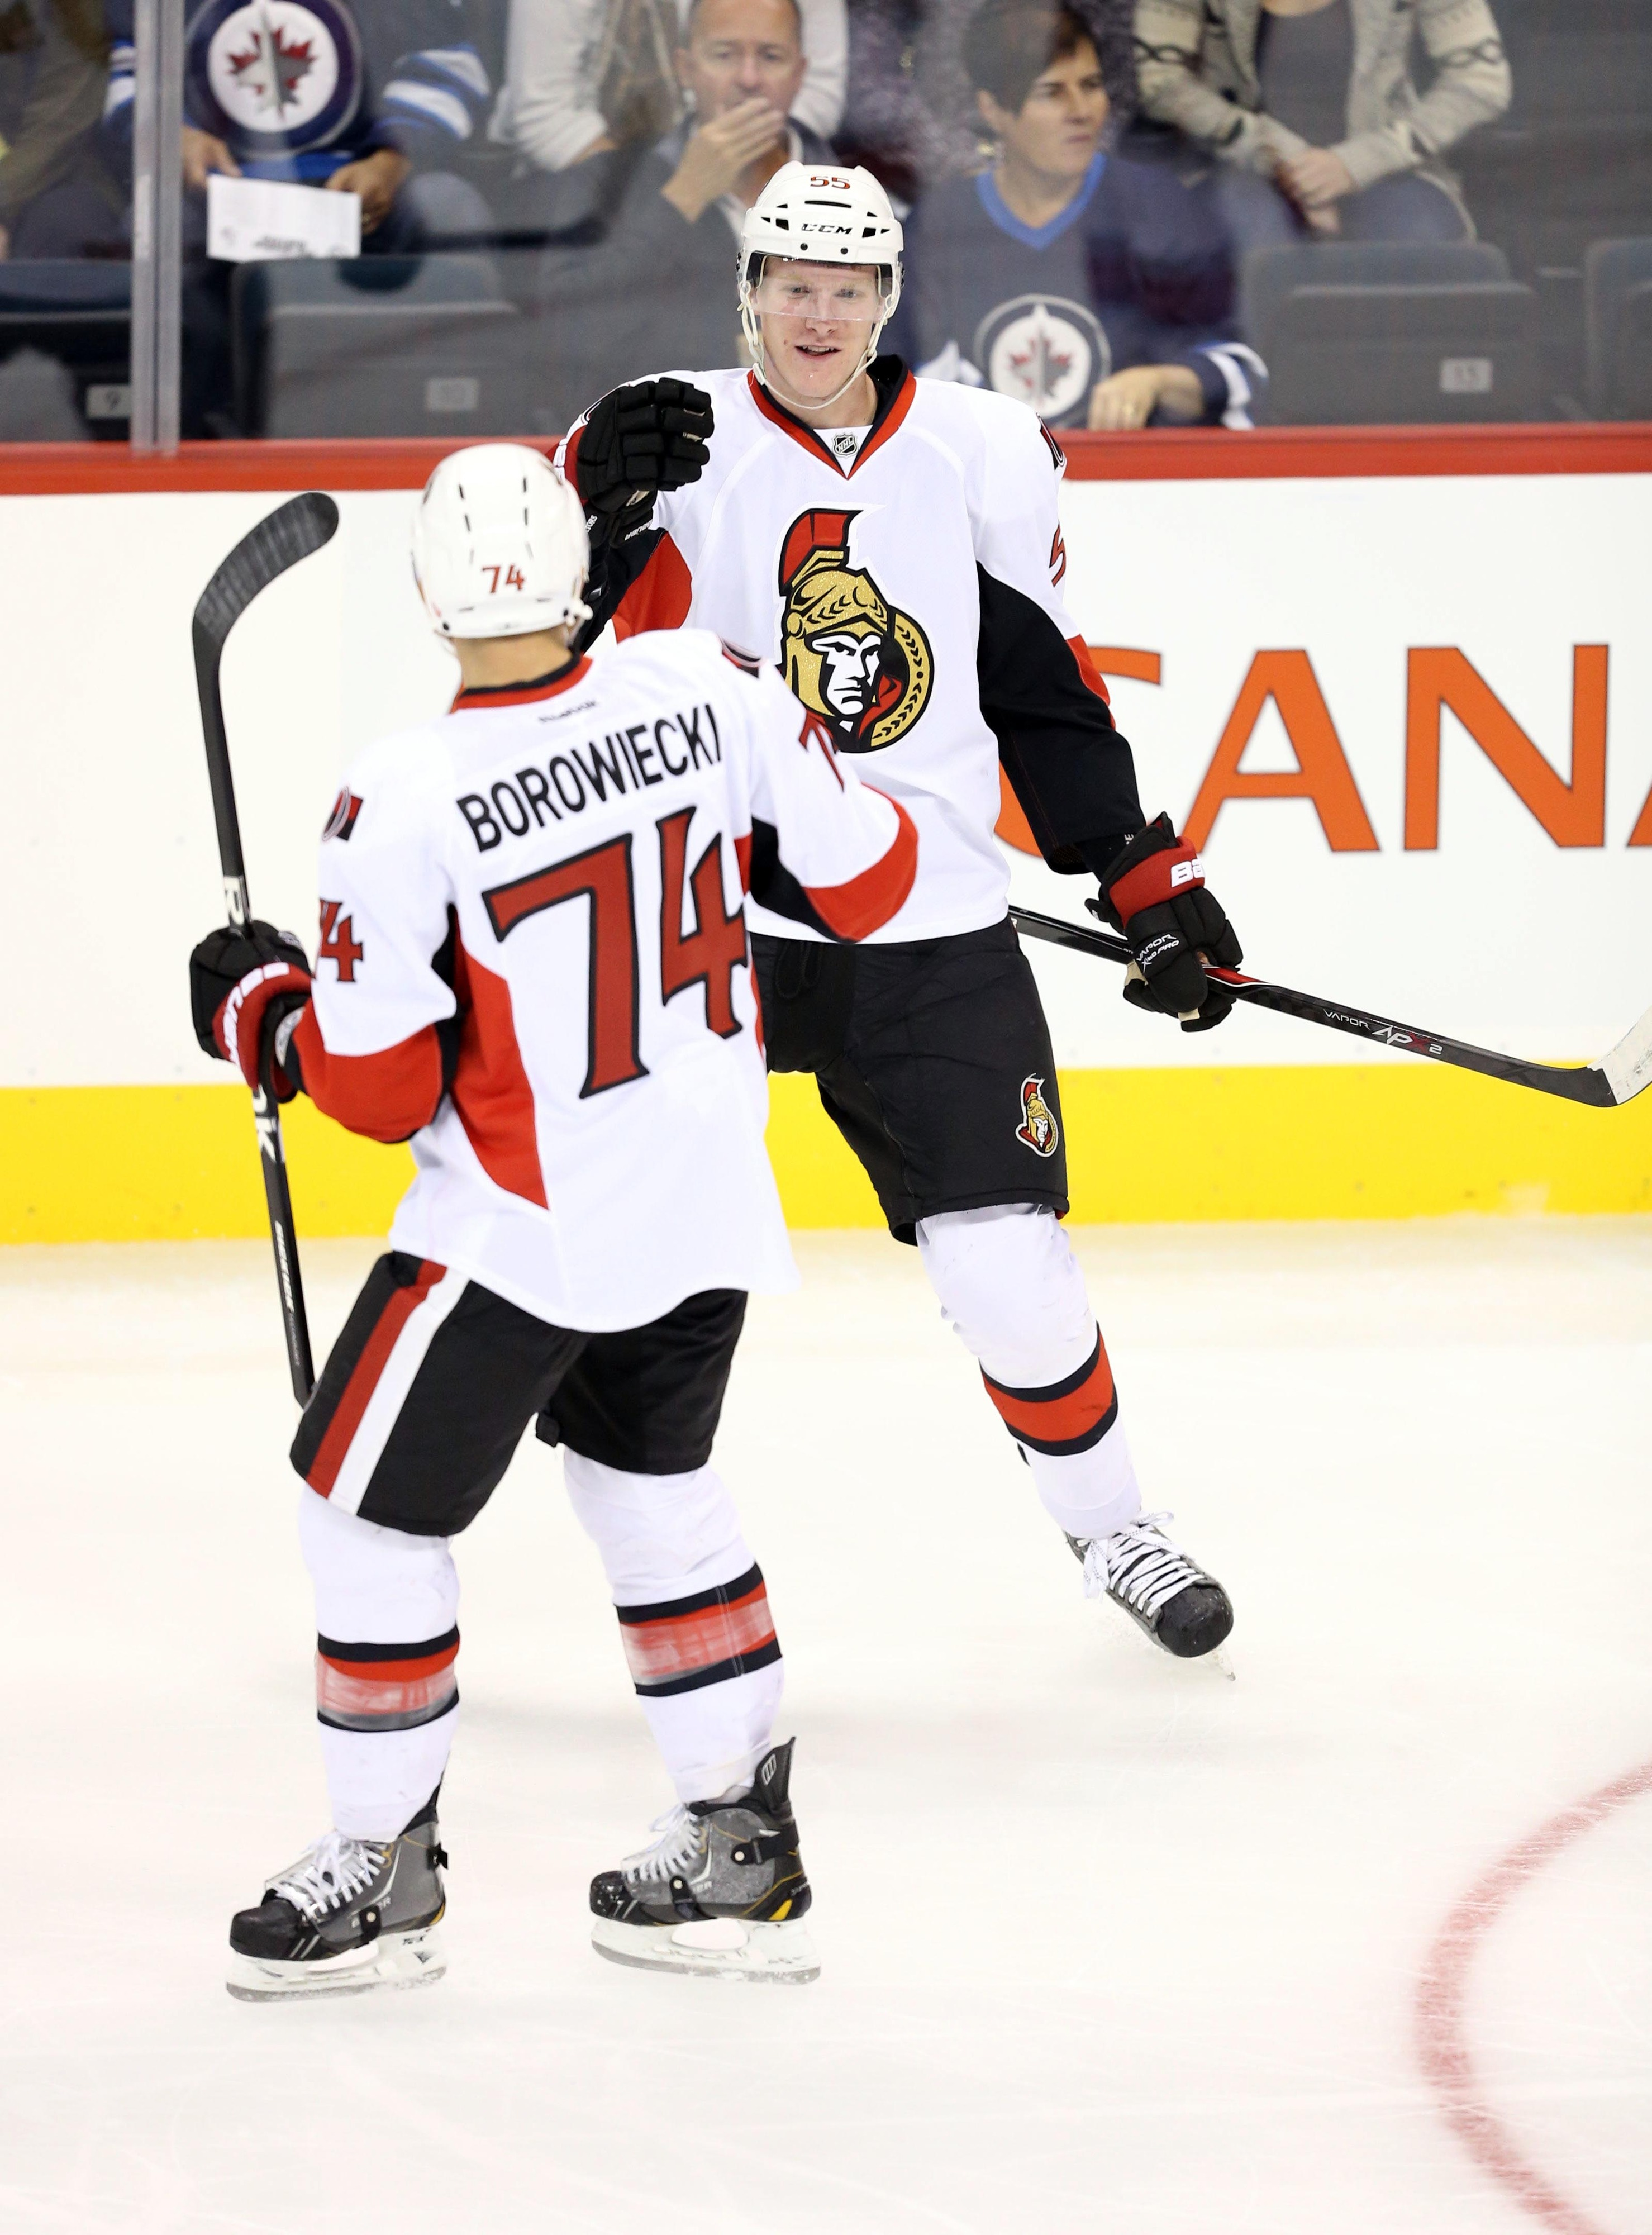 """Robinson is the one in the jersey that doesn't say """"Borowiecki"""""""